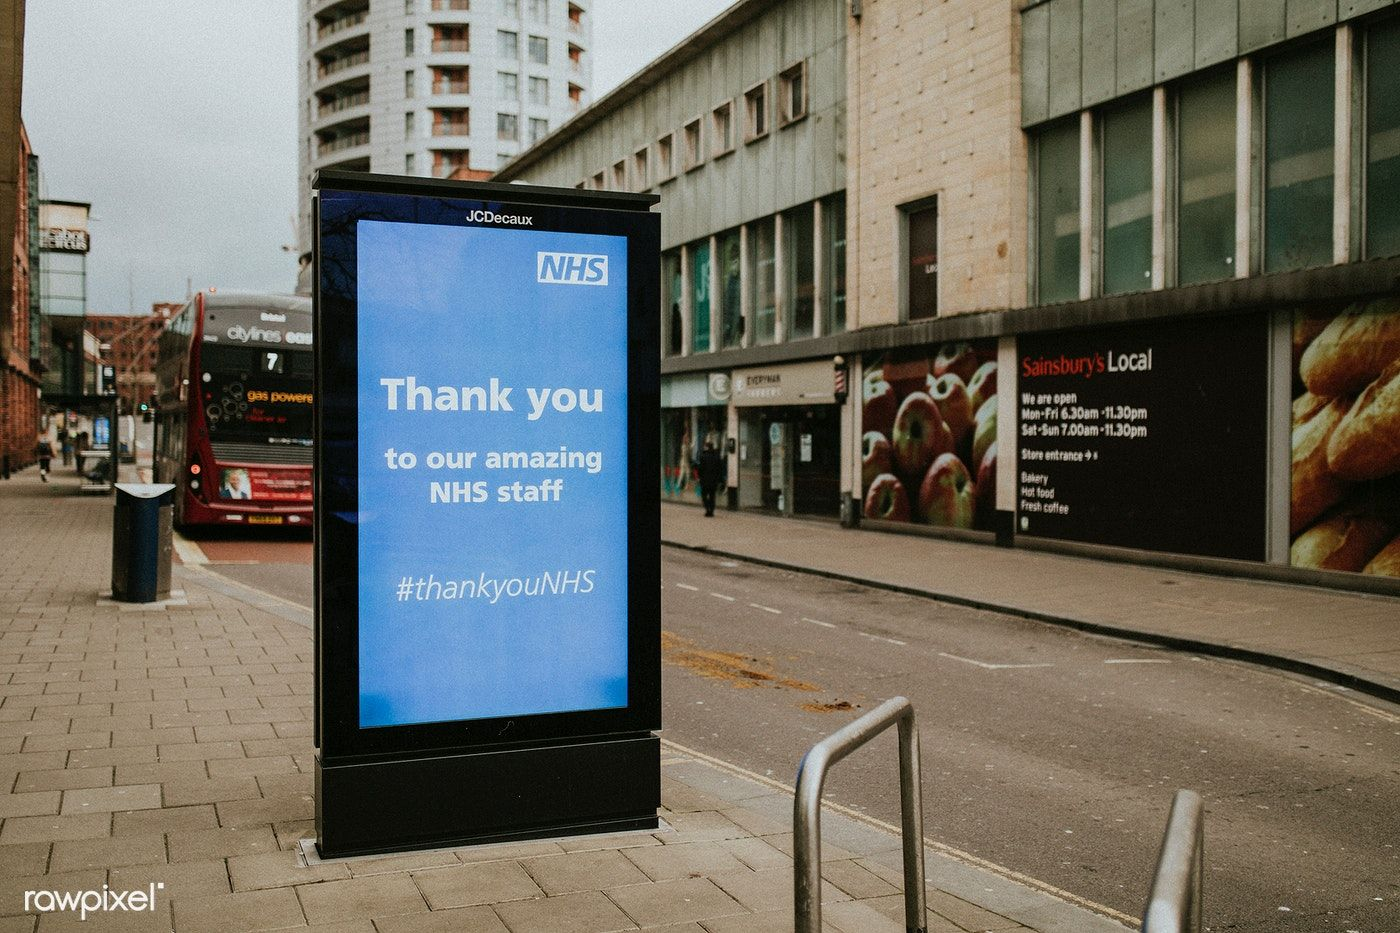 Photo of Download free image of NHS's thank you staff advert in the city during